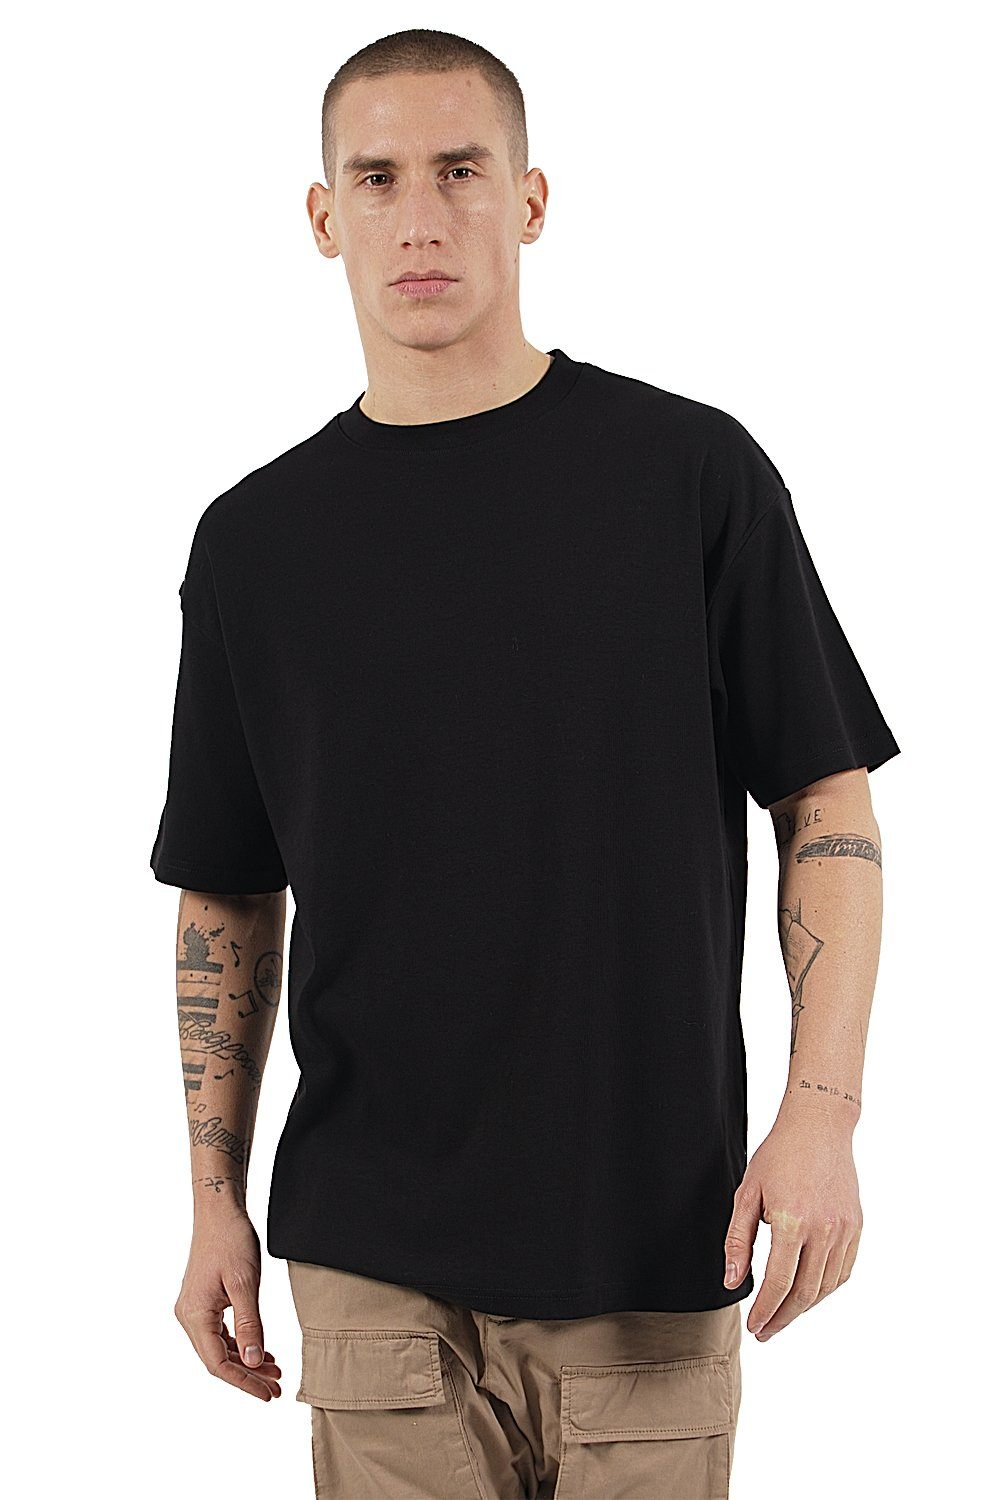 Heavy Oversized Basic Tee Black